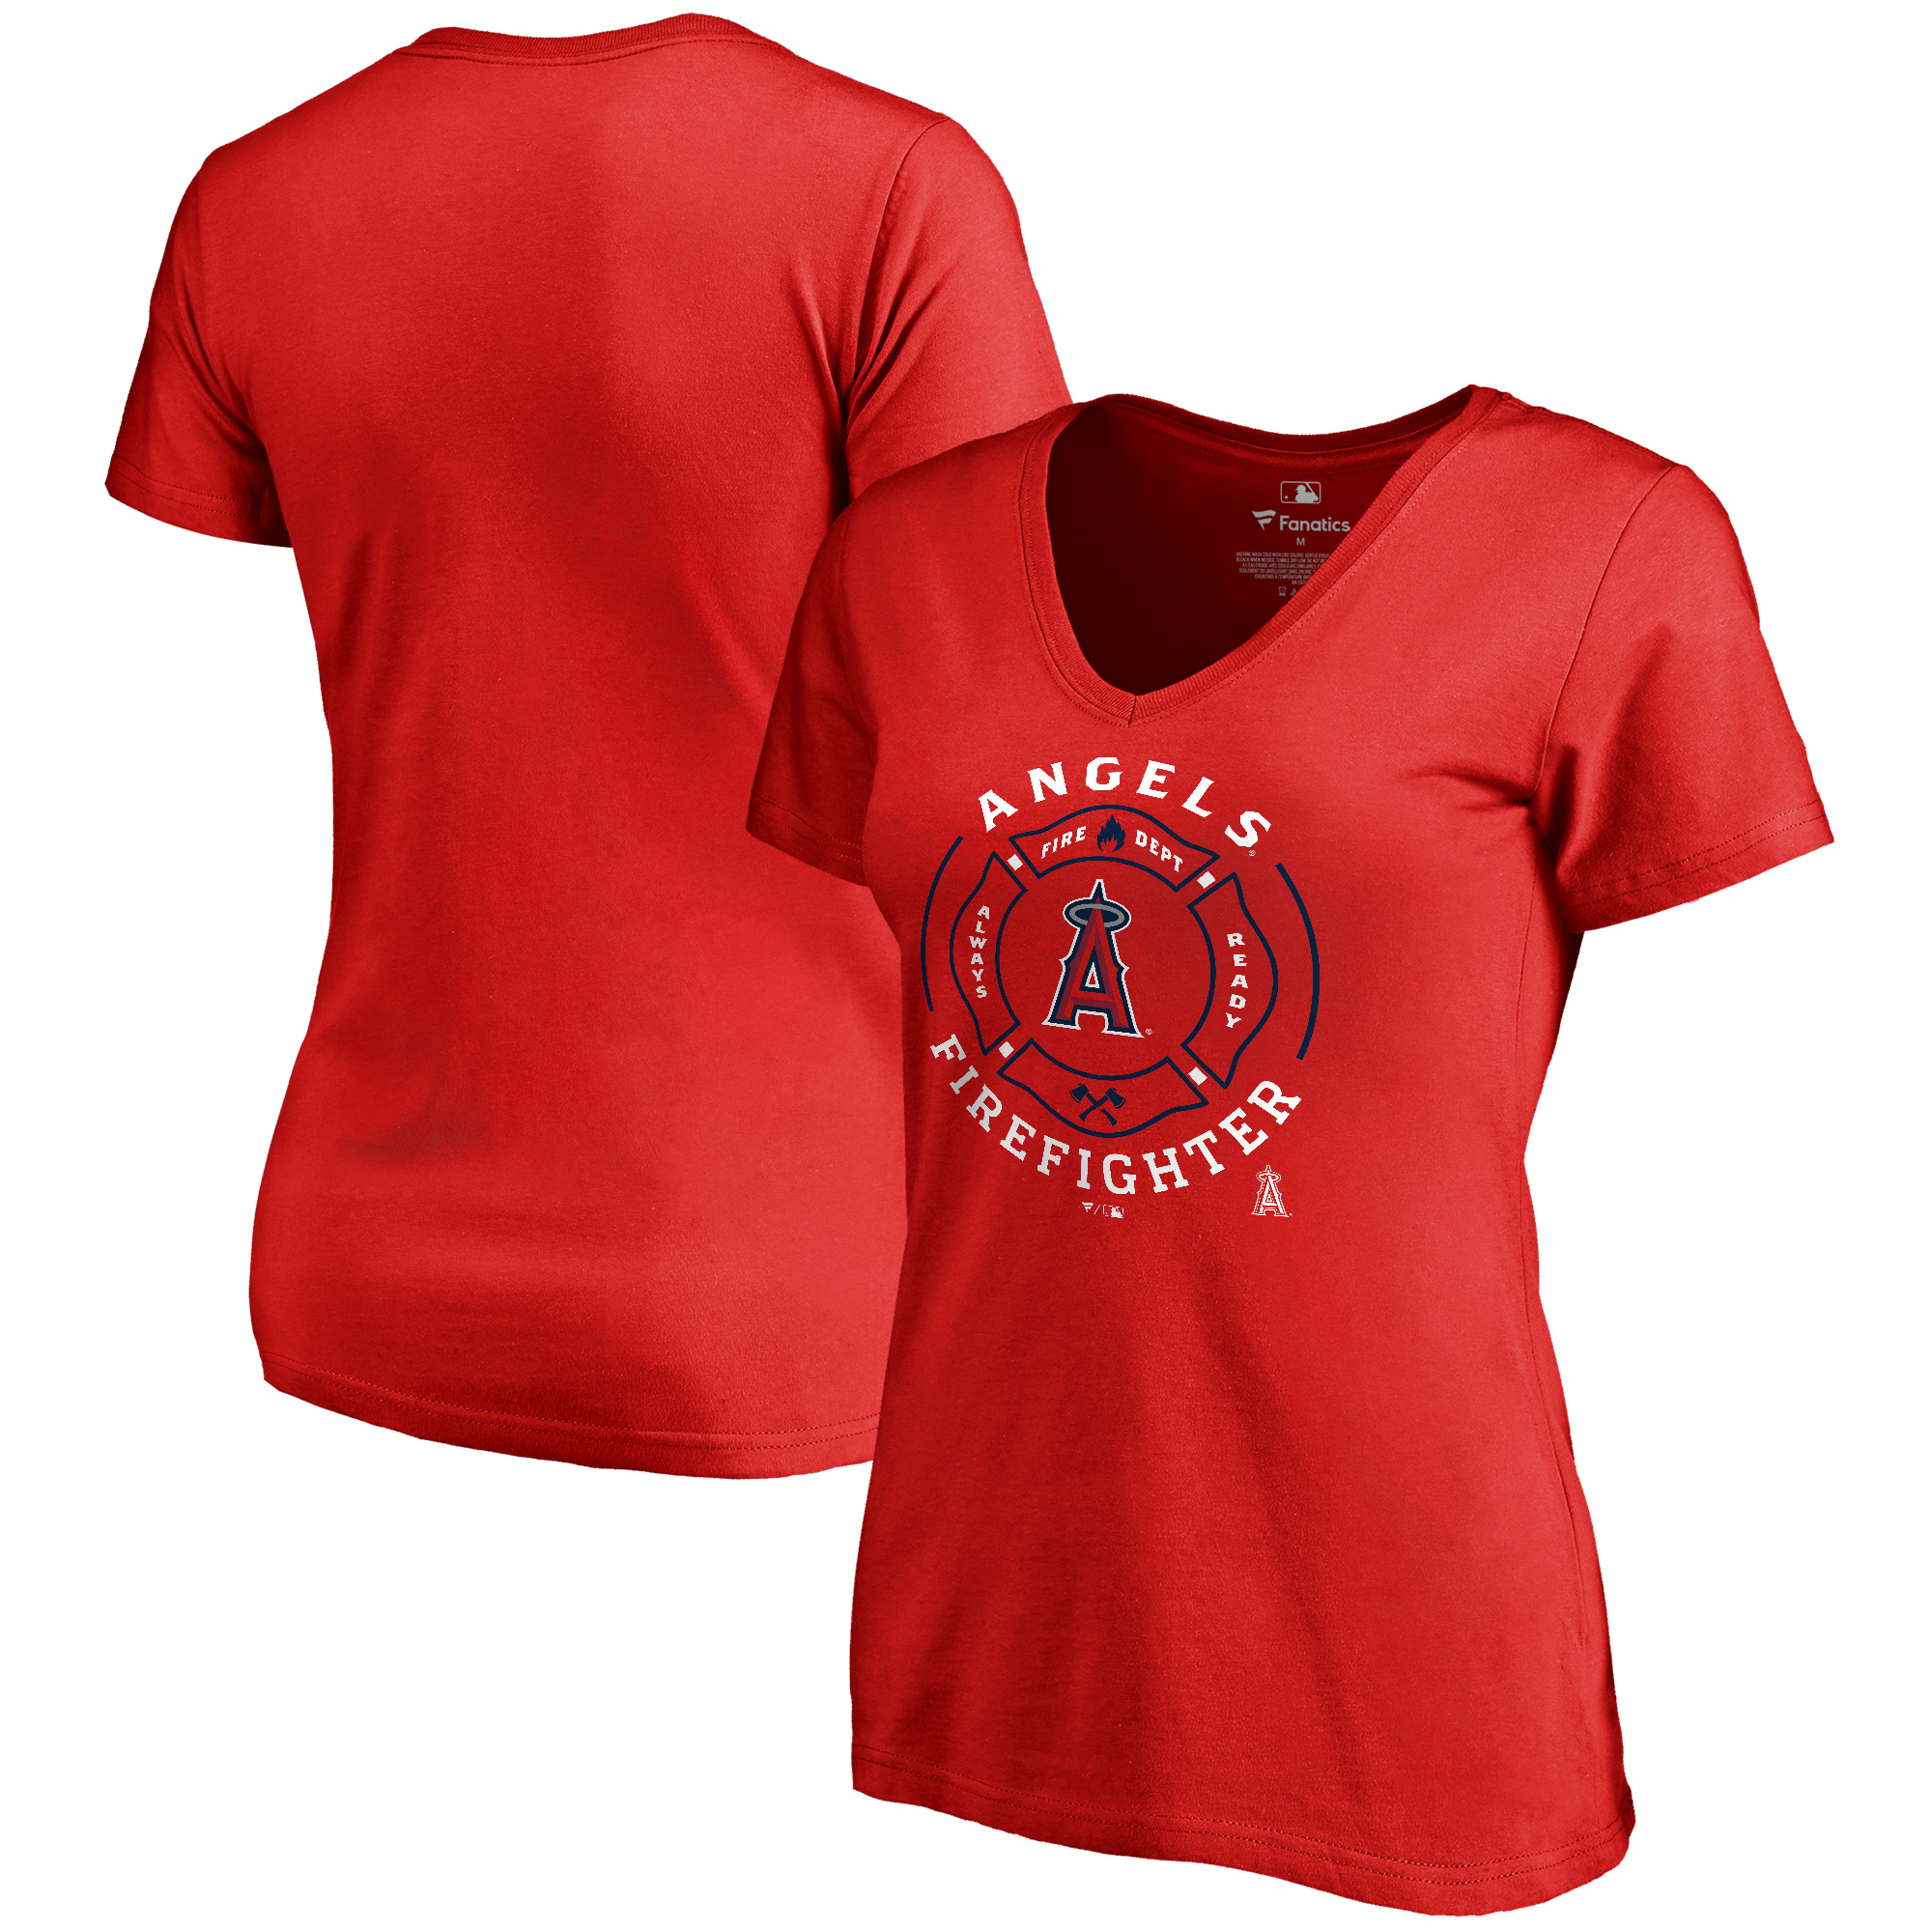 Los Angeles Angels Women's Firefighter T-Shirt - Red